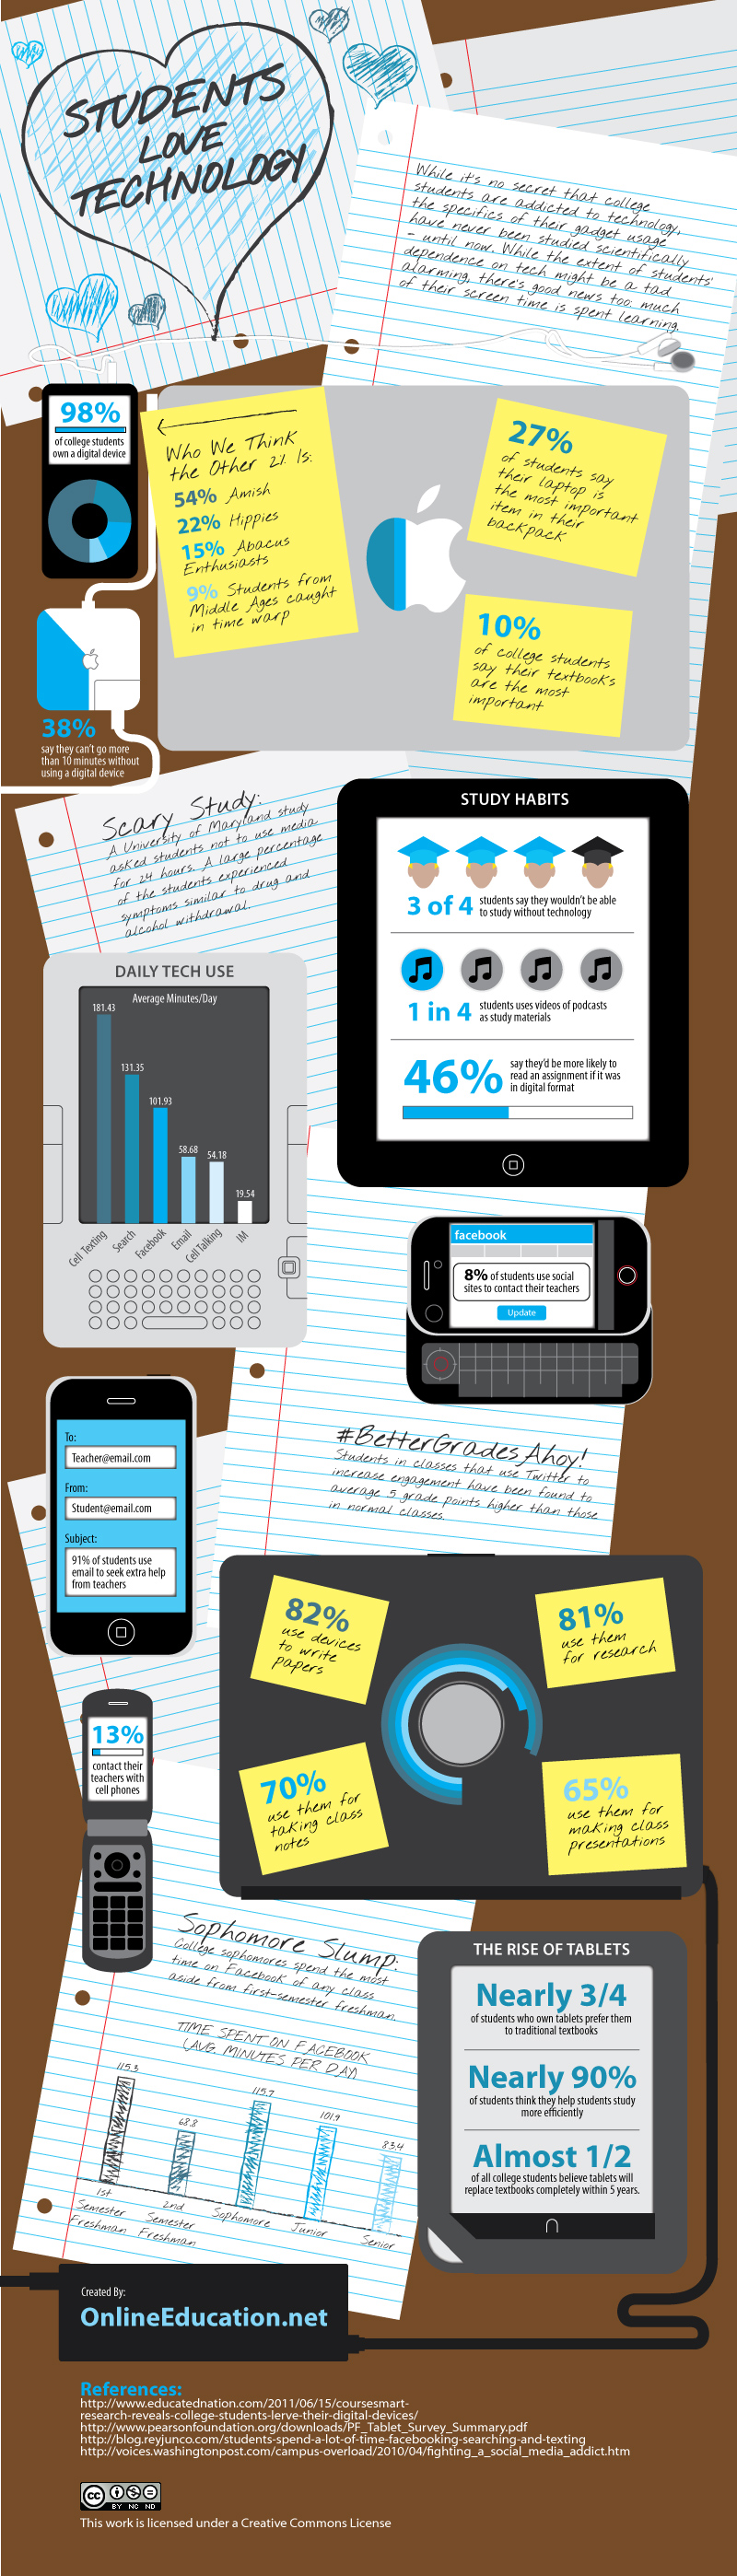 How college students use social media